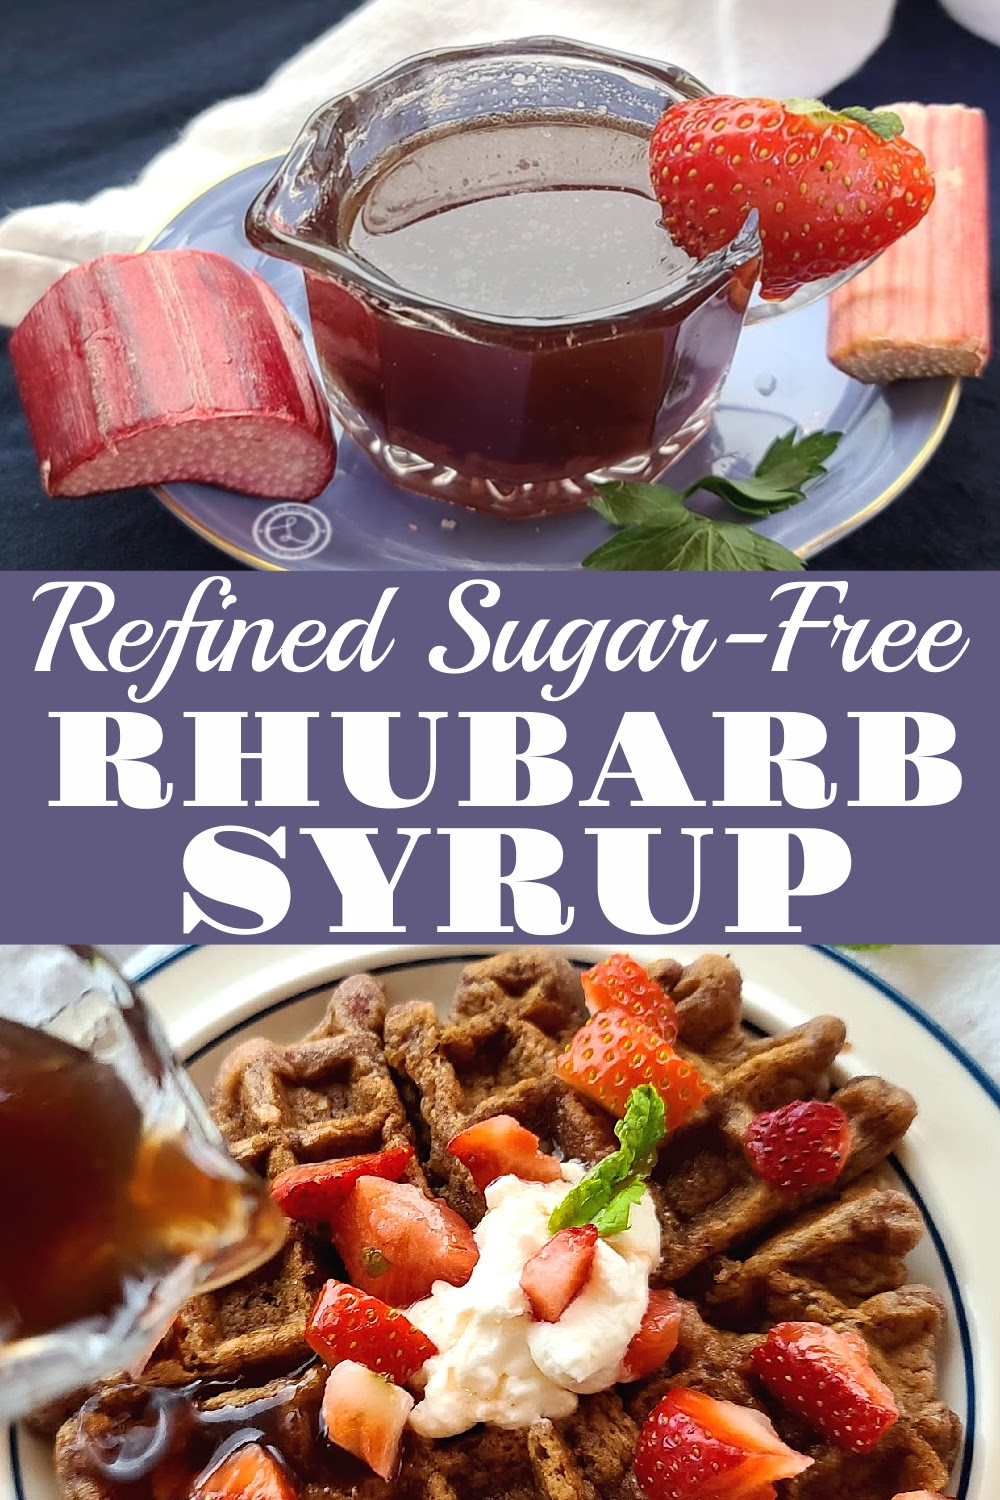 Refined Sugar-Free Rhubarb Syrup. 2 Pictures: One of the syrup and one of syrup being poured onto a strawberry waffle